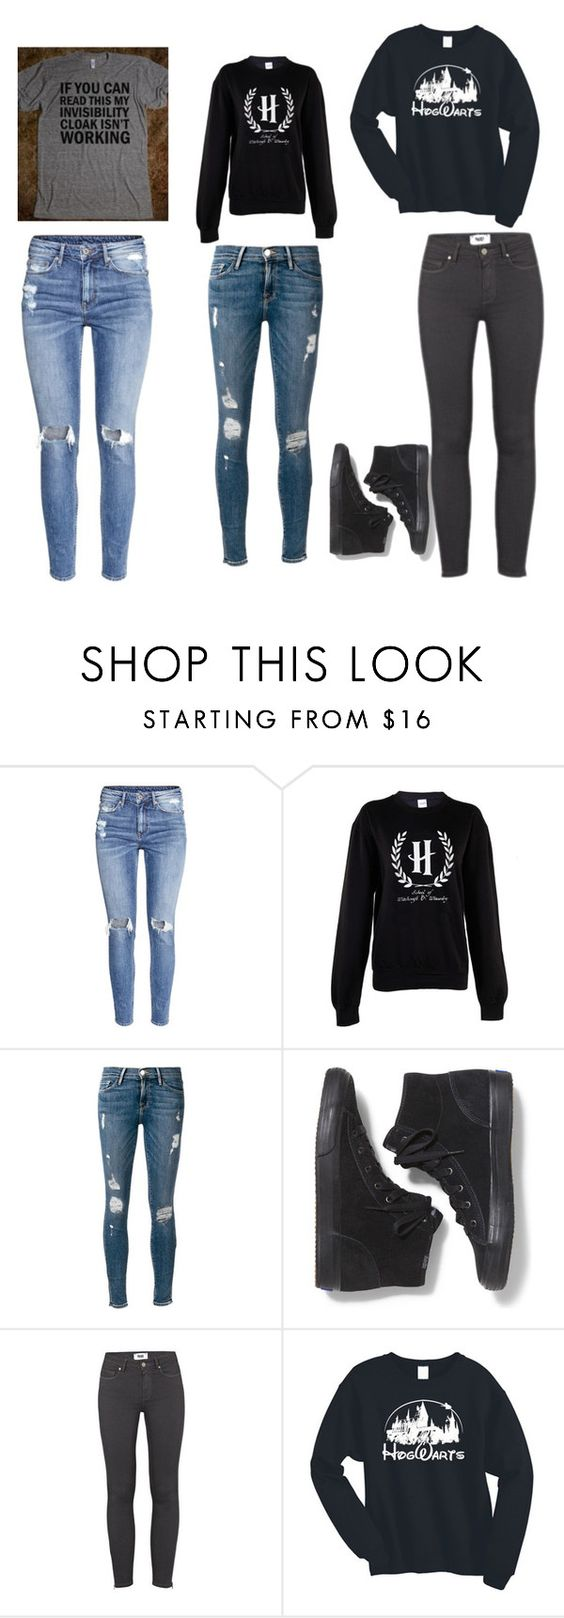 """Harry Potter"" by hogwartshermione ❤ liked on Polyvore featuring H&M, Frame Denim, Keds, Paige Denim, women's clothing, women, female, woman, misses and juniors"